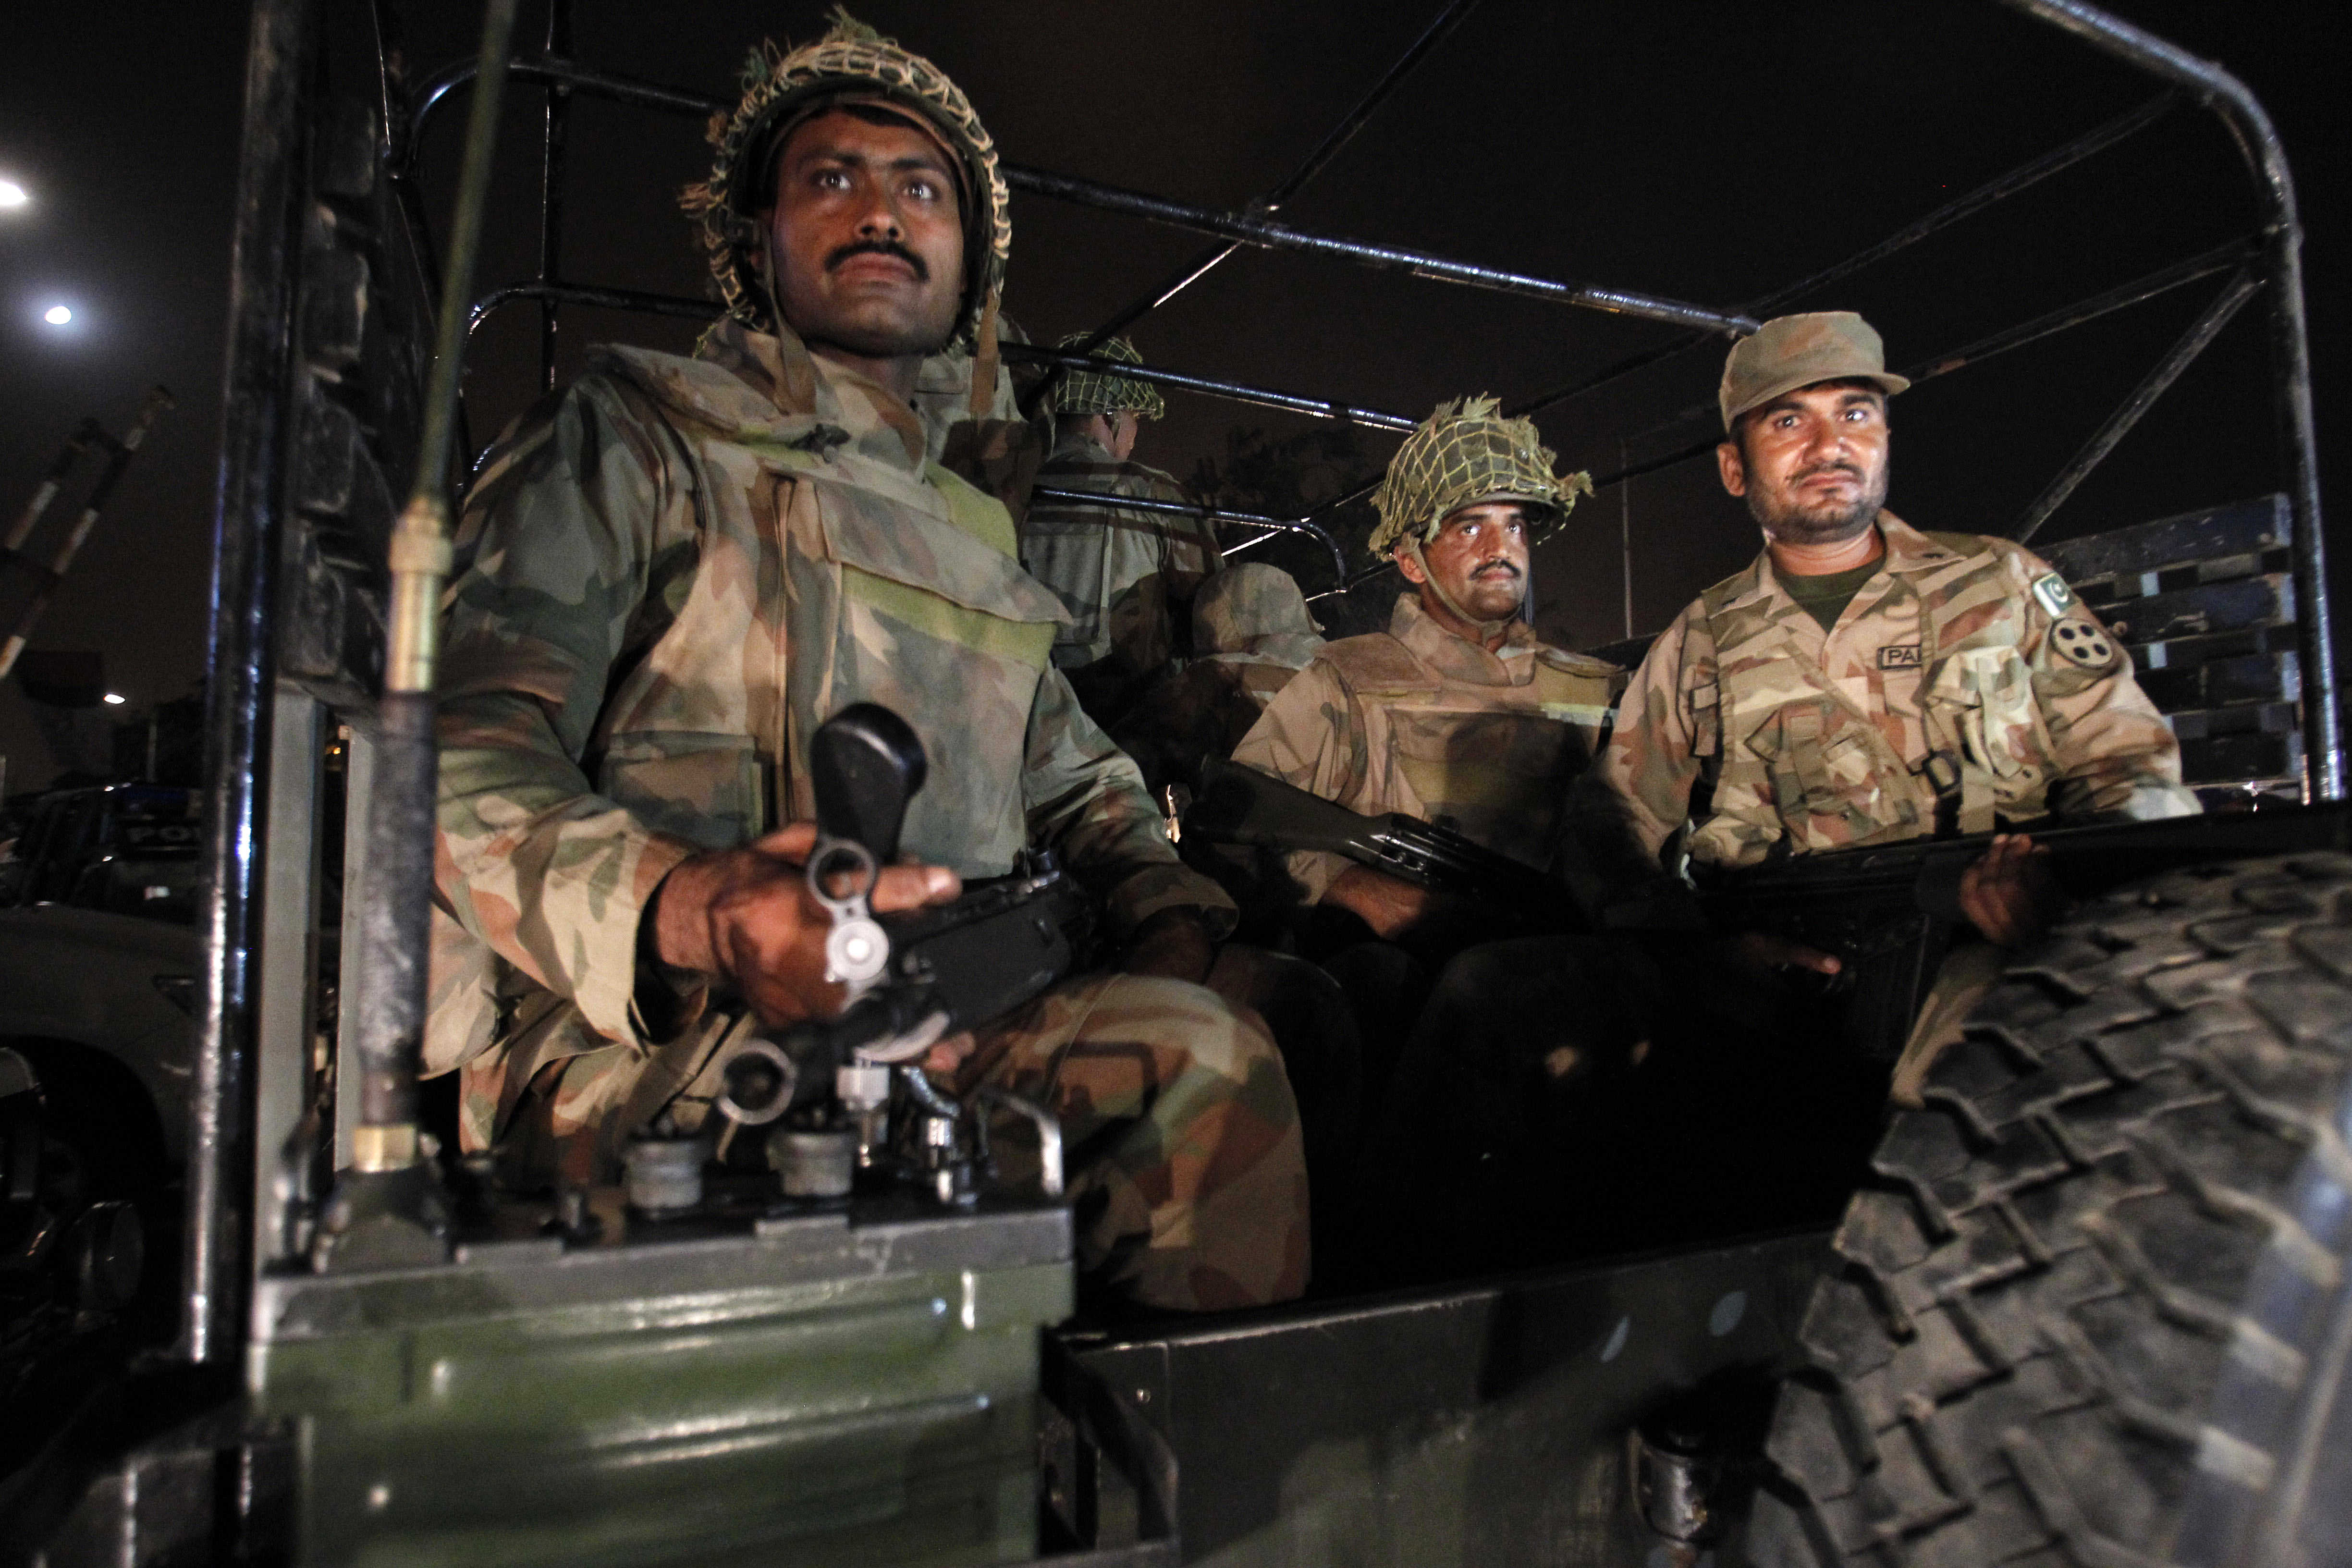 Pakistan army troops arrive at Karachi airport following an attack by unknown gunmen, disguised as police, who stormed a terminal used for VIPs and cargo, Sunday night, June 8, 2014.